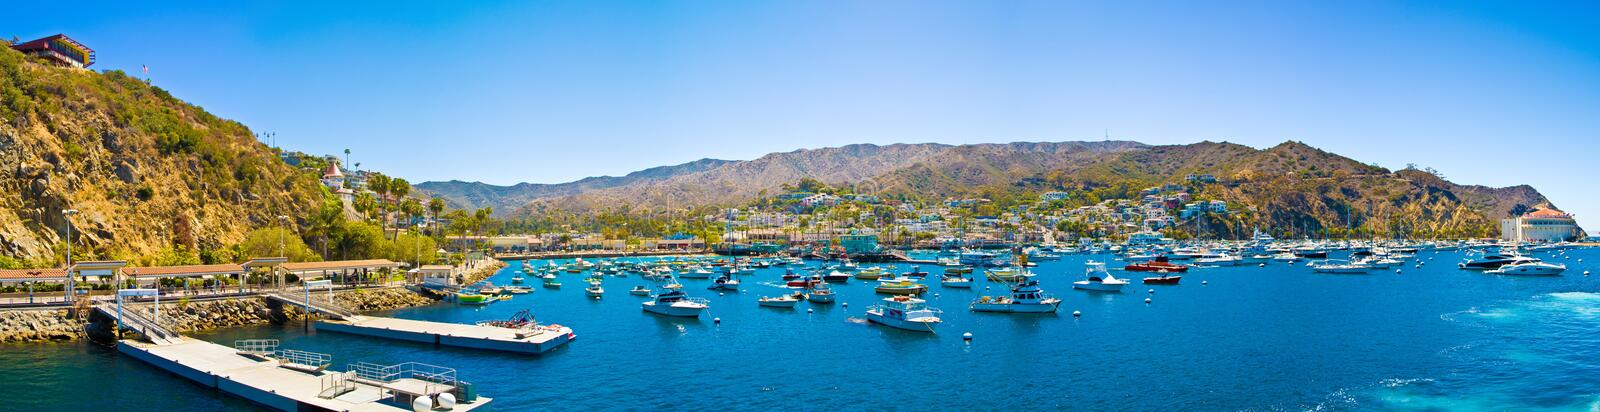 Avalon, Catalina Island fotografia de stock royalty free